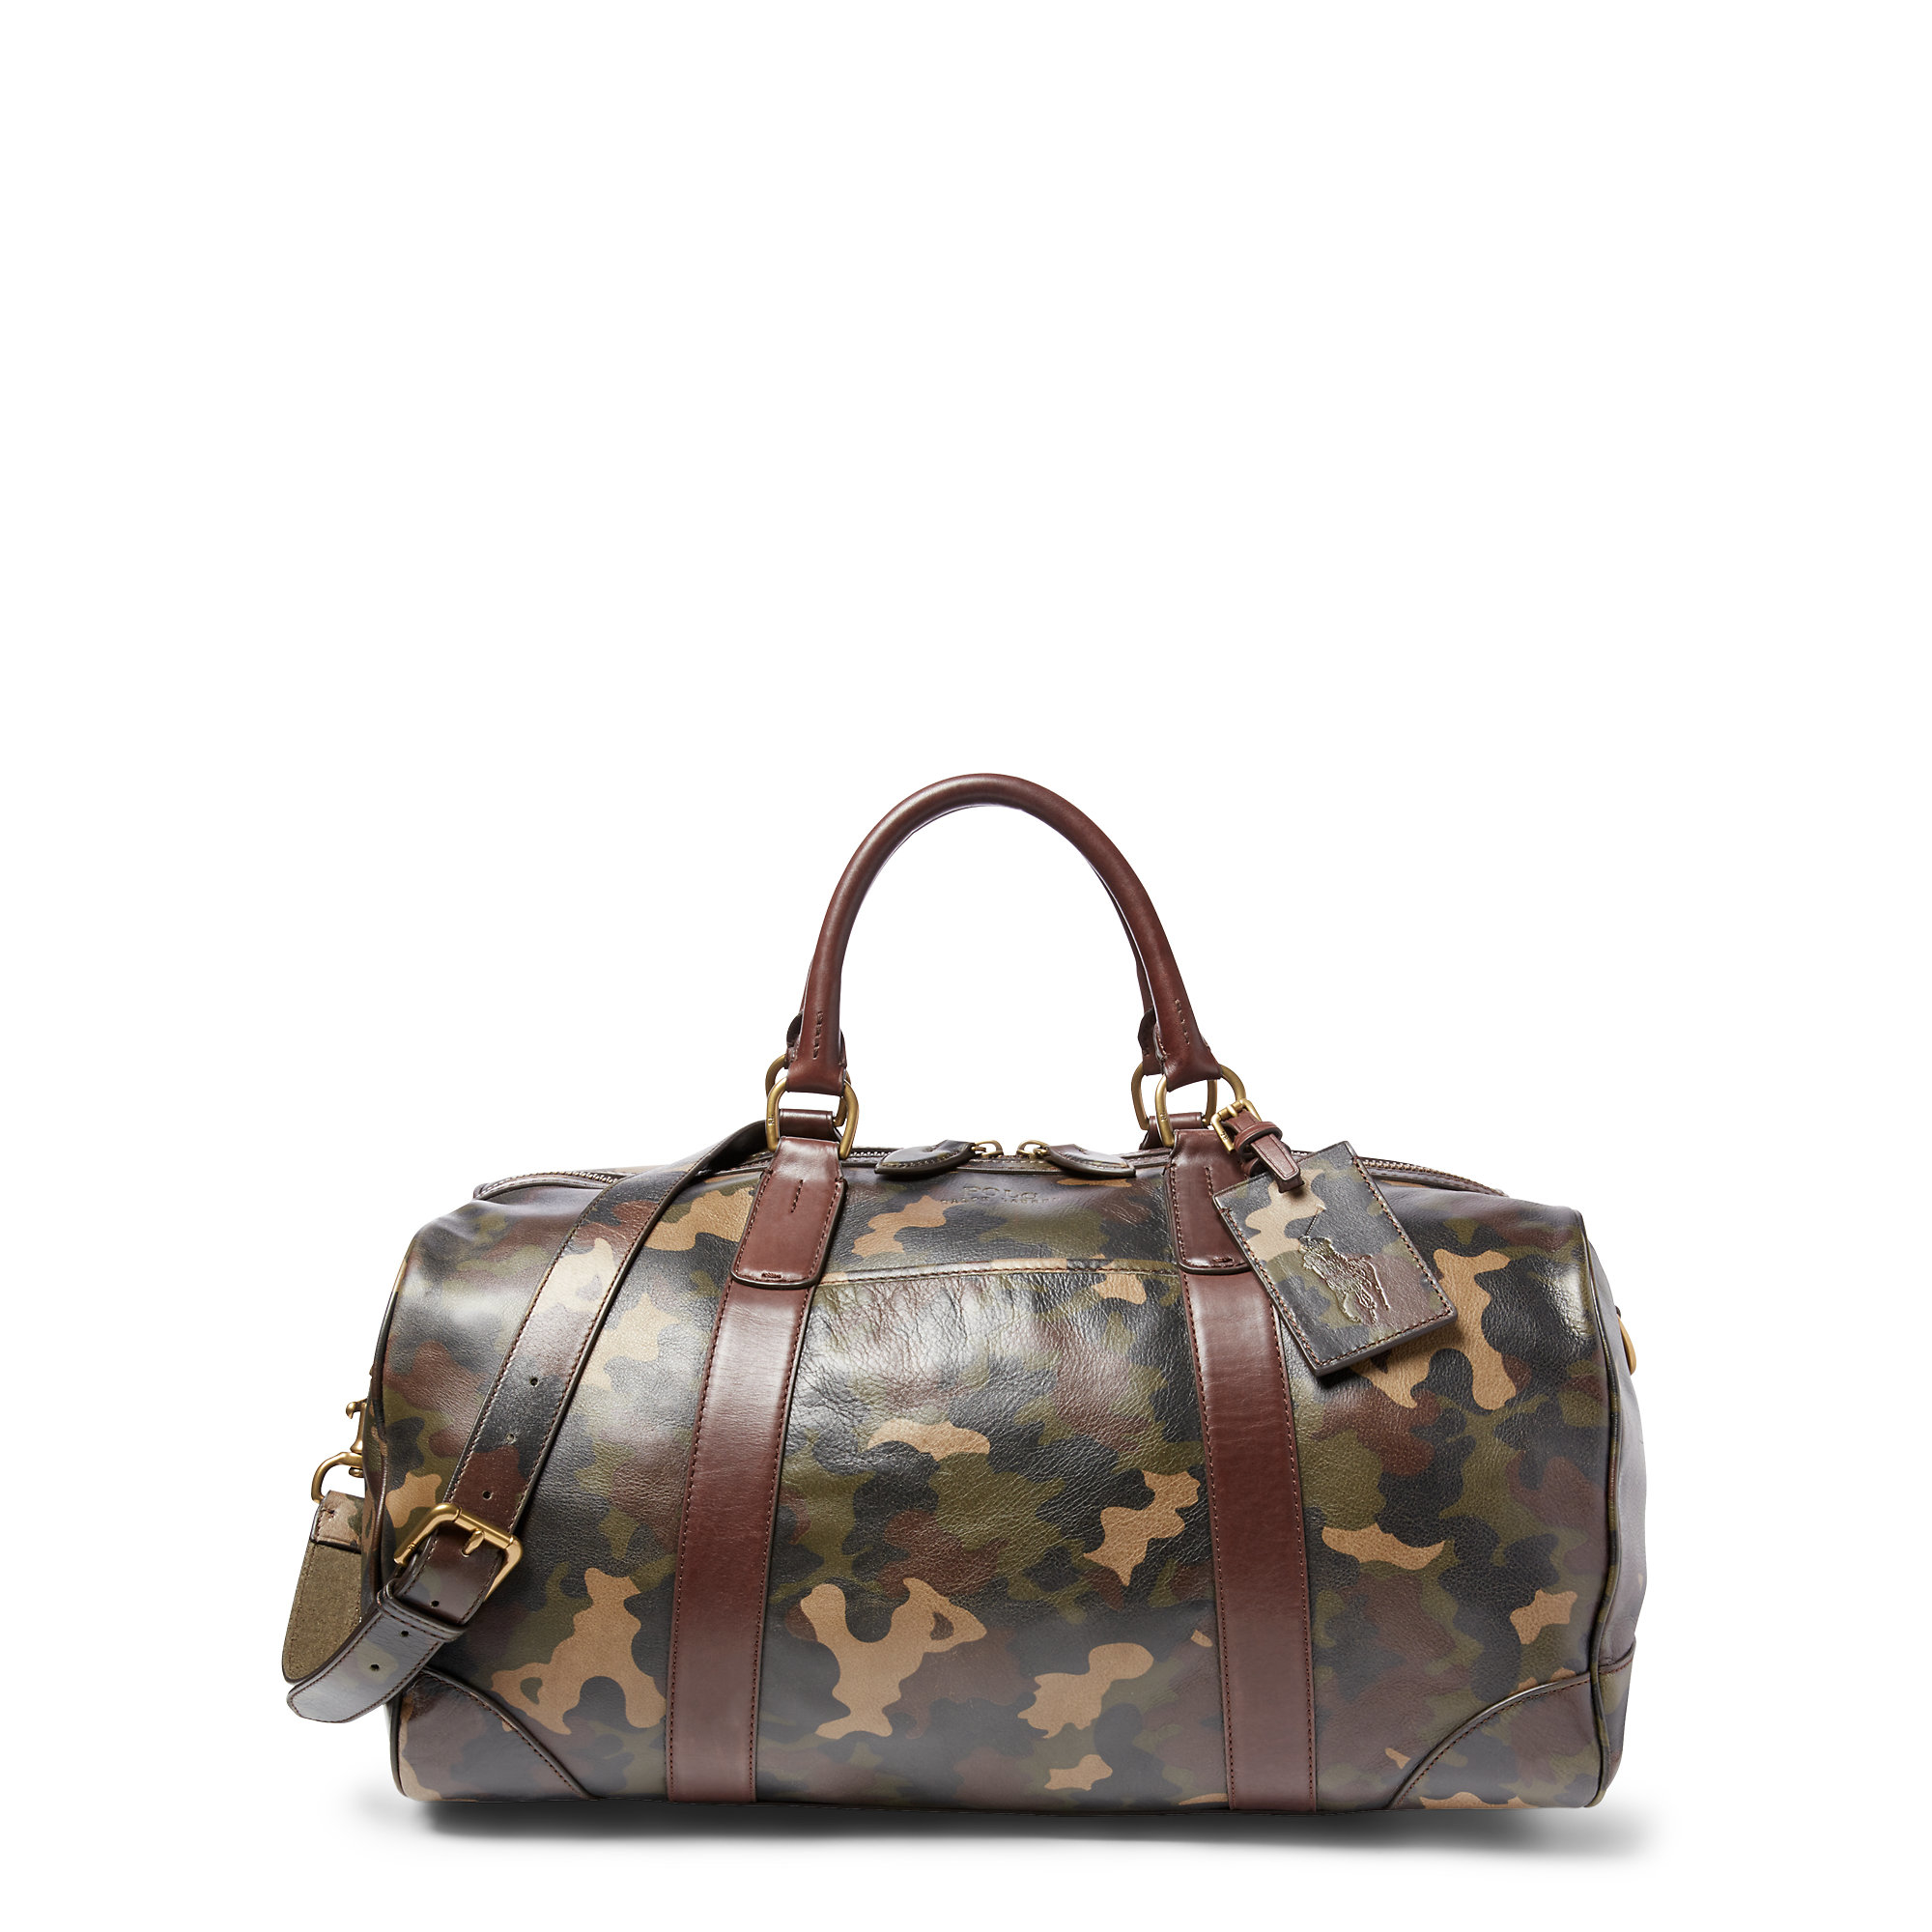 Lyst - Polo Ralph Lauren Camouflage Leather Duffel Bag in Gray for Men 454200d6d7641